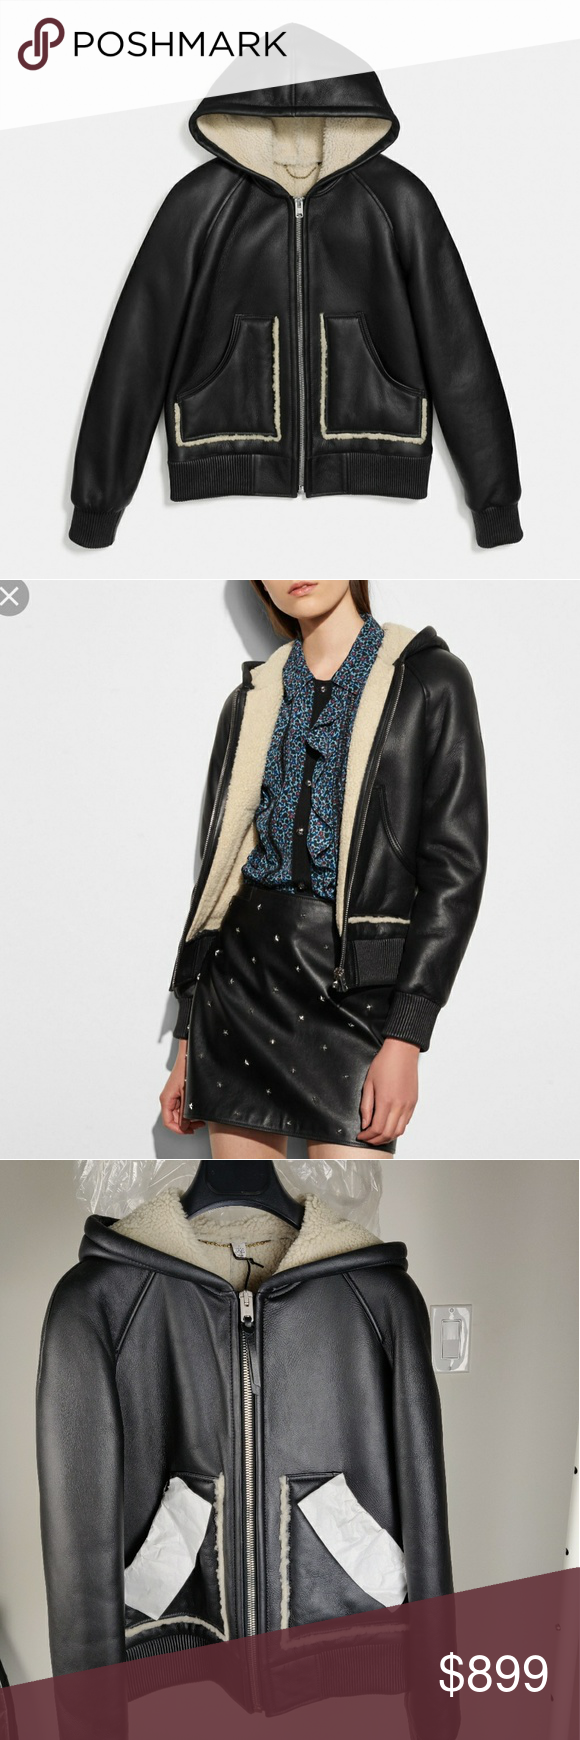 ️ COACH ️ authentic shearling leather jacket 🖤 NWT never